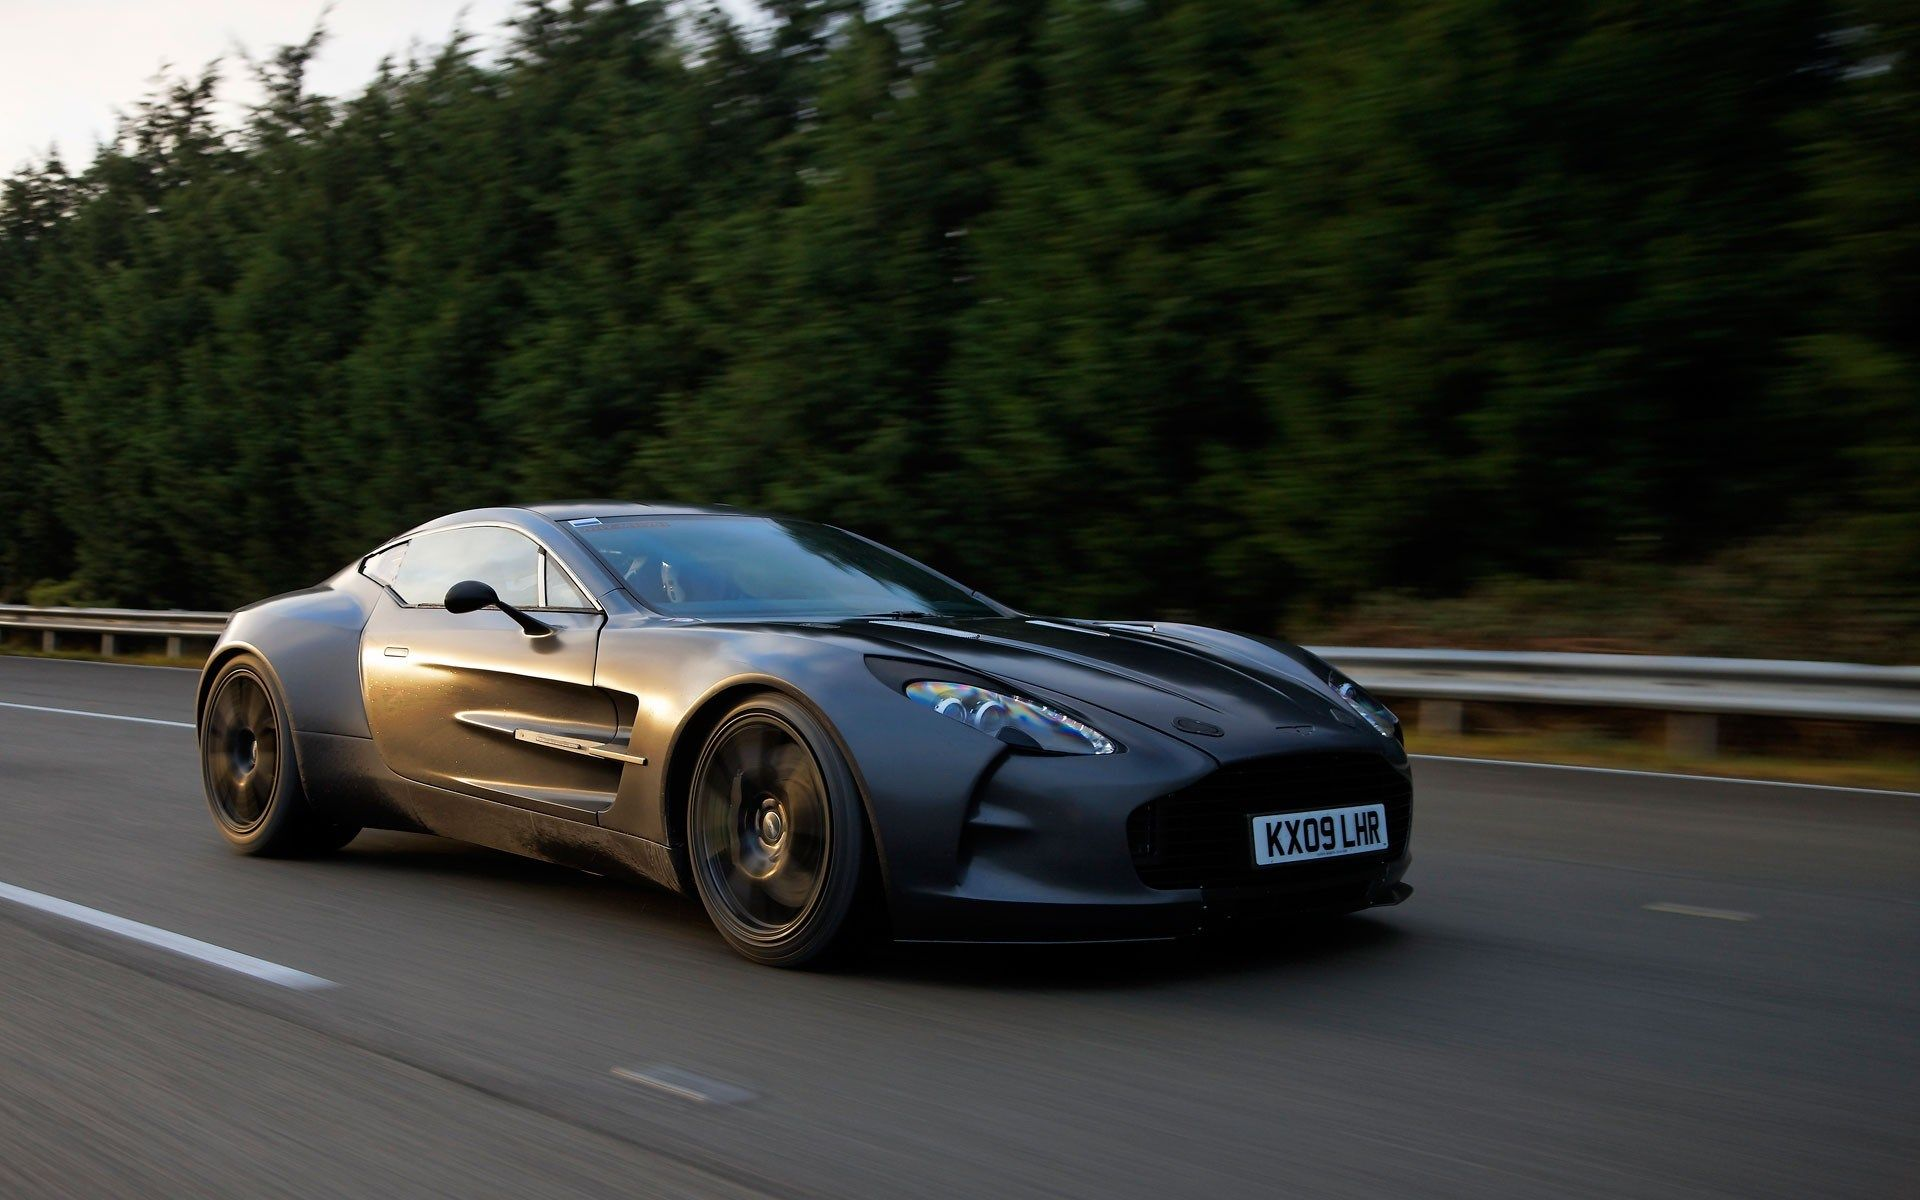 aston martin one 77 backround free hd widescreen by Fenton Butler